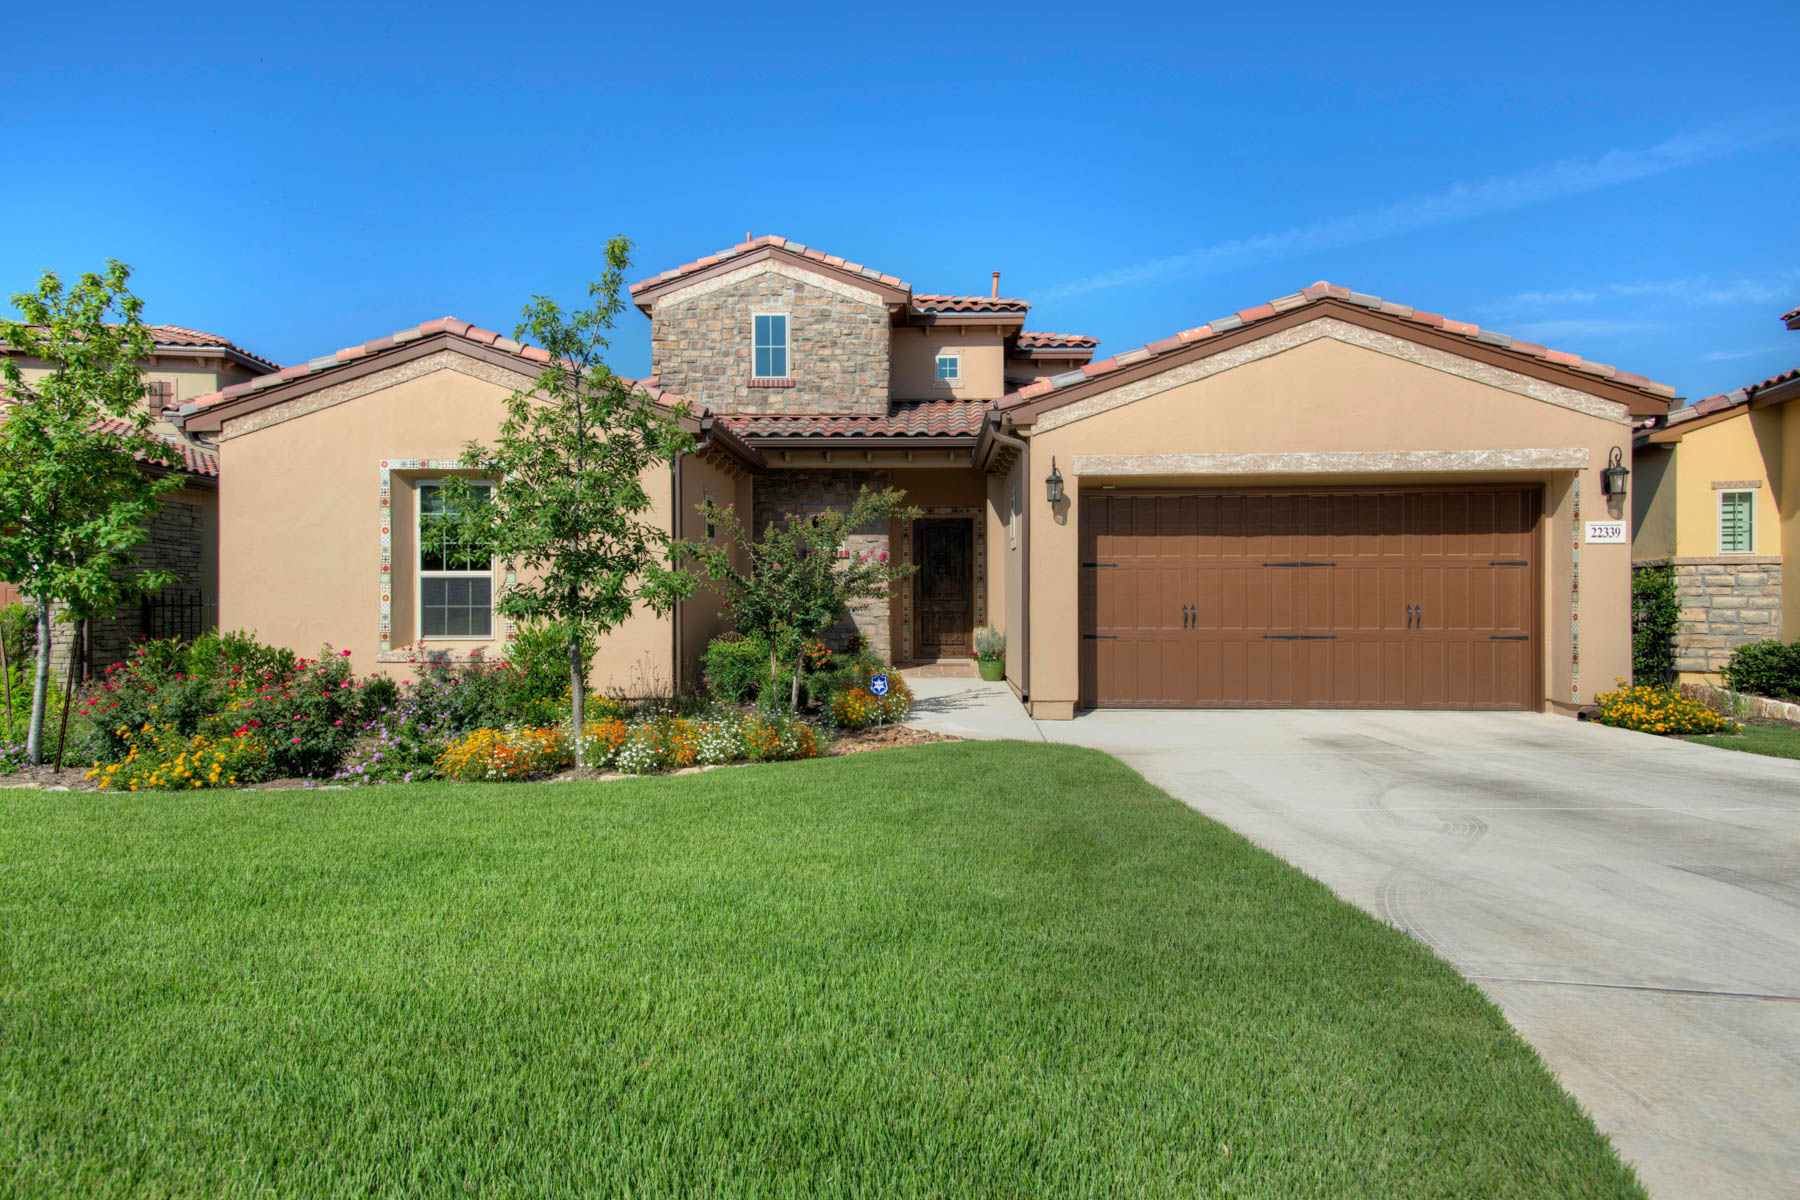 Single Family Home for Sale at Beautiful Garden Home in the Campanas 22339 Viajes San Antonio, Texas 78261 United States